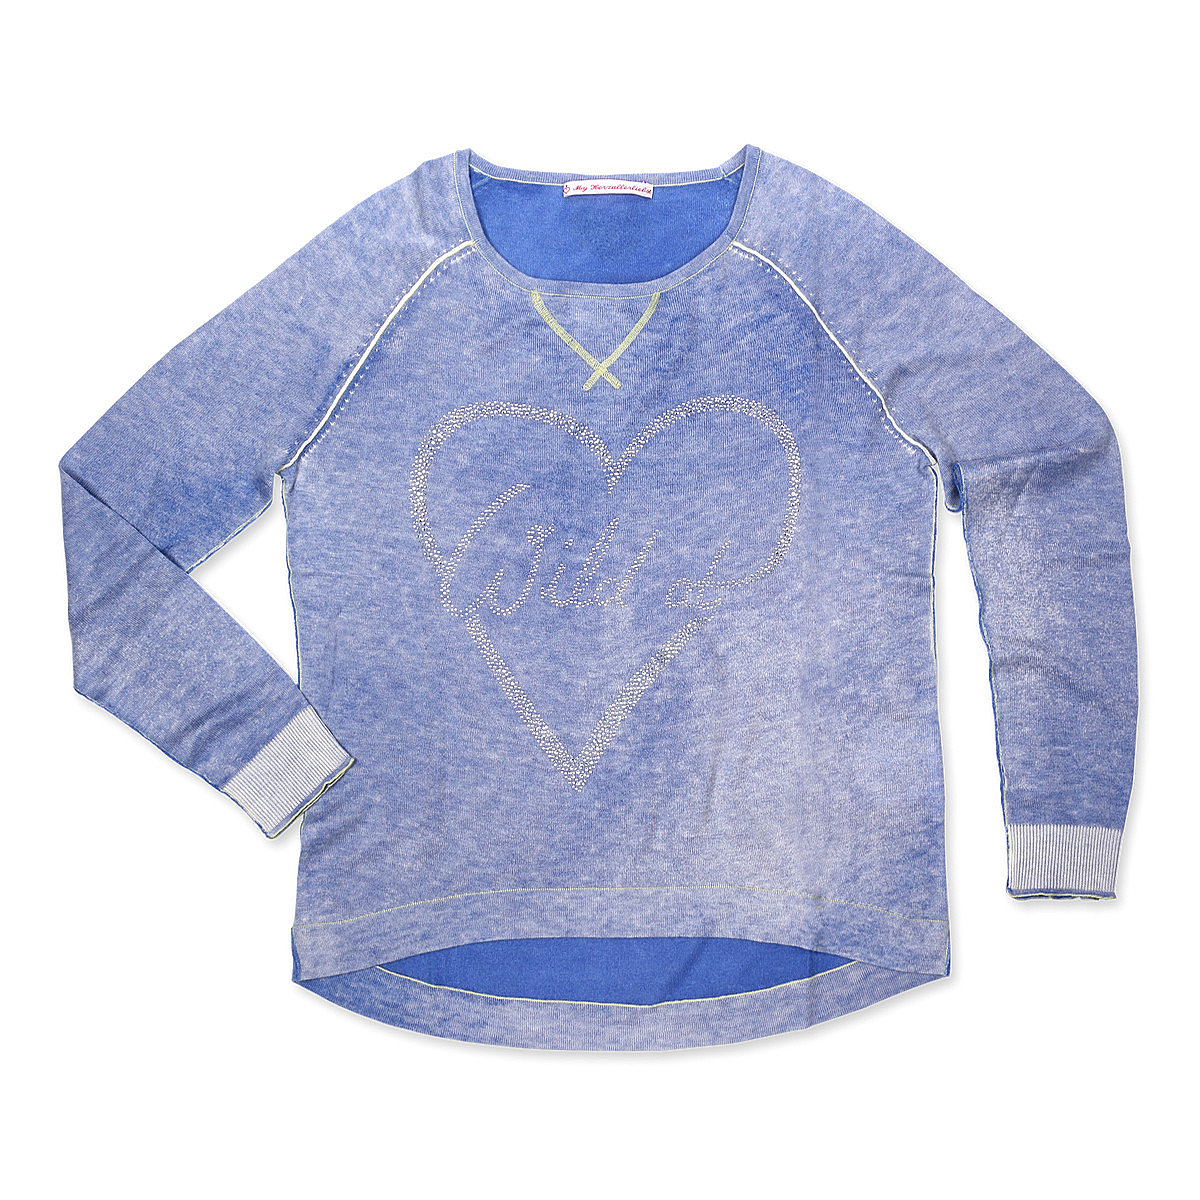 My Herzallerliebst Damenpullover Wild at Heart blau